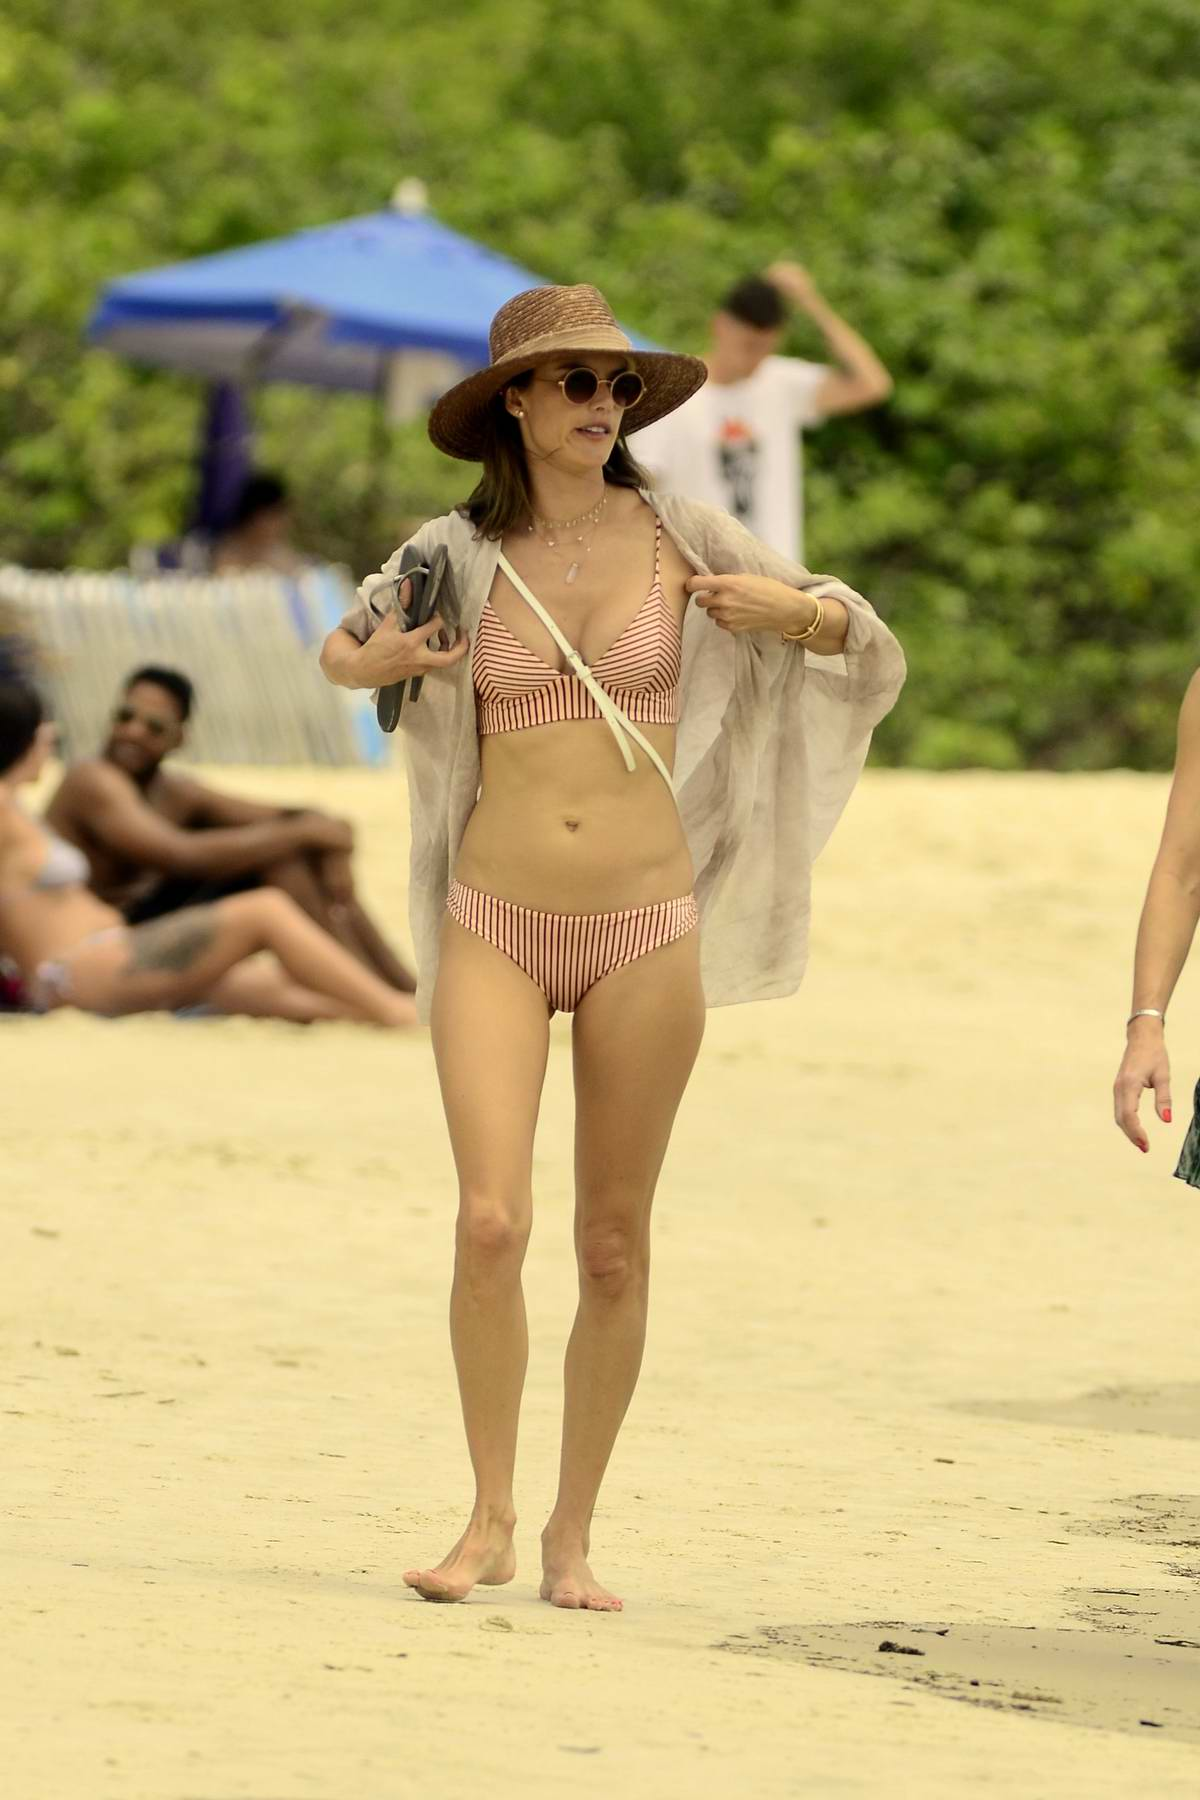 Alessandra Ambrosio seen wearing a striped bikini while enjoying a day at the beach with friends in Florianopolis, Brazil